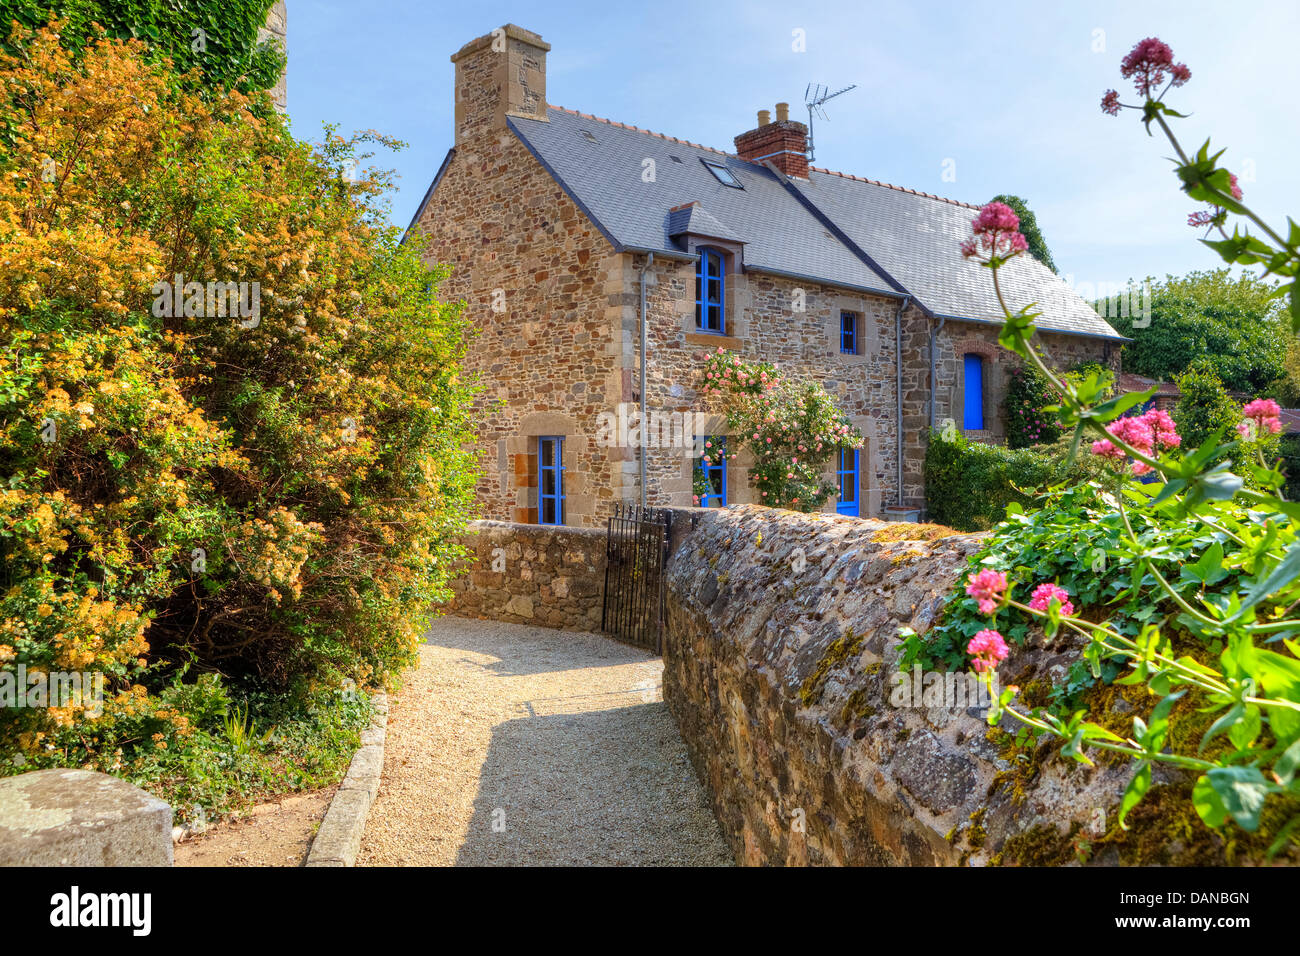 granite cottage in Saint-Suliac, Brittany, France - Stock Image